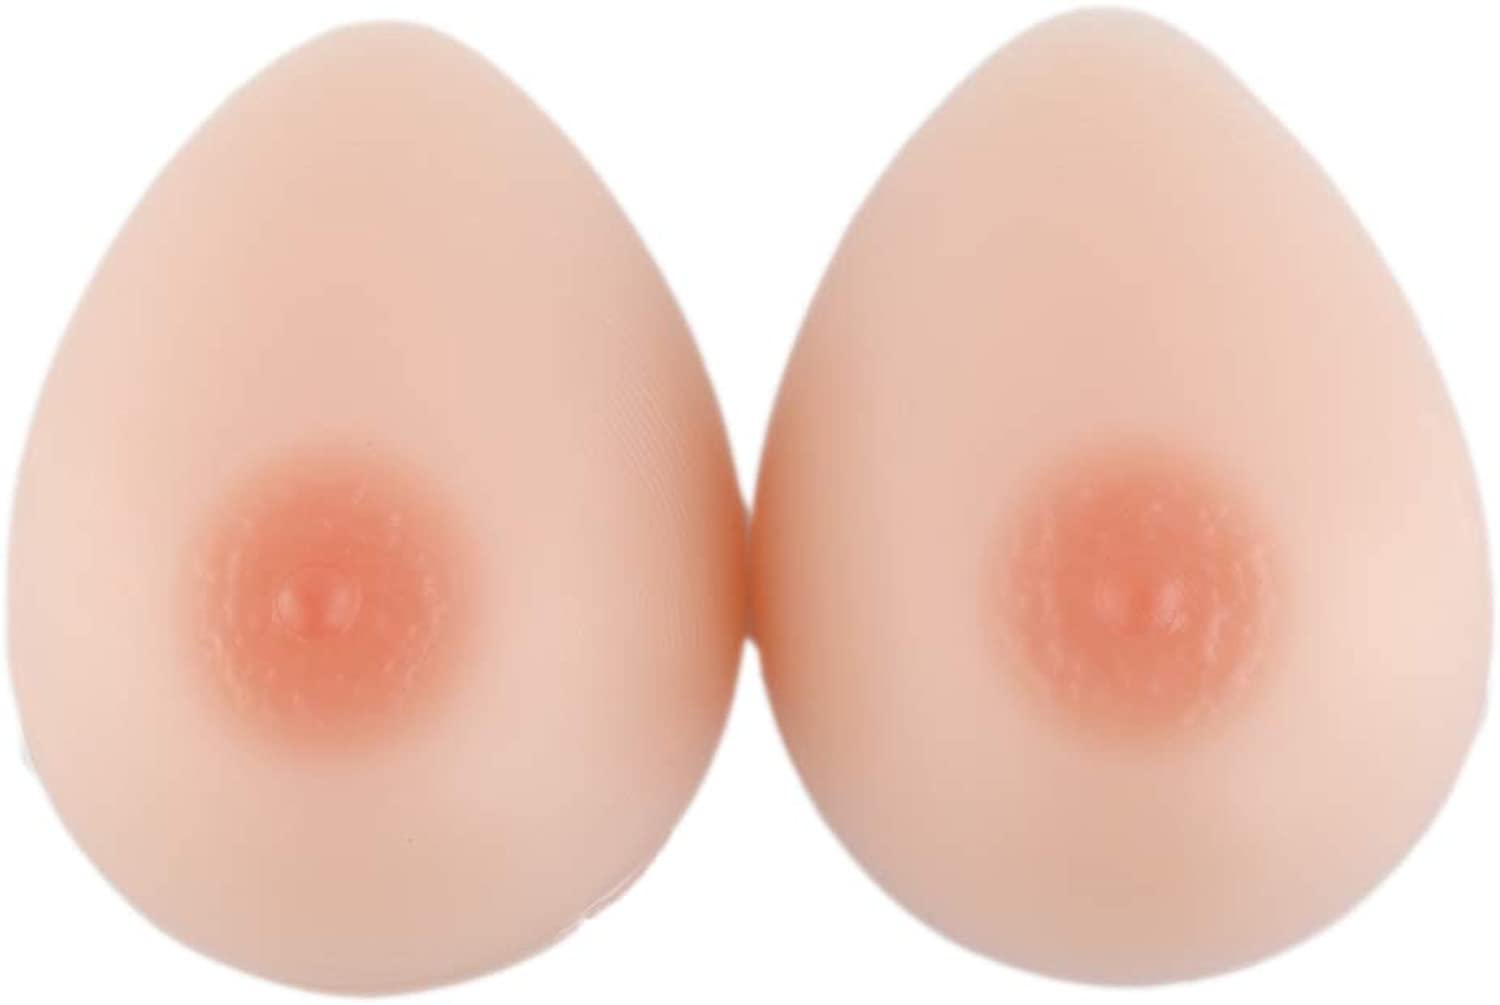 Fake Boobs Realistic Silicone Chest Breast Prosthesis Bra Inserts for Crossdresser Transgender